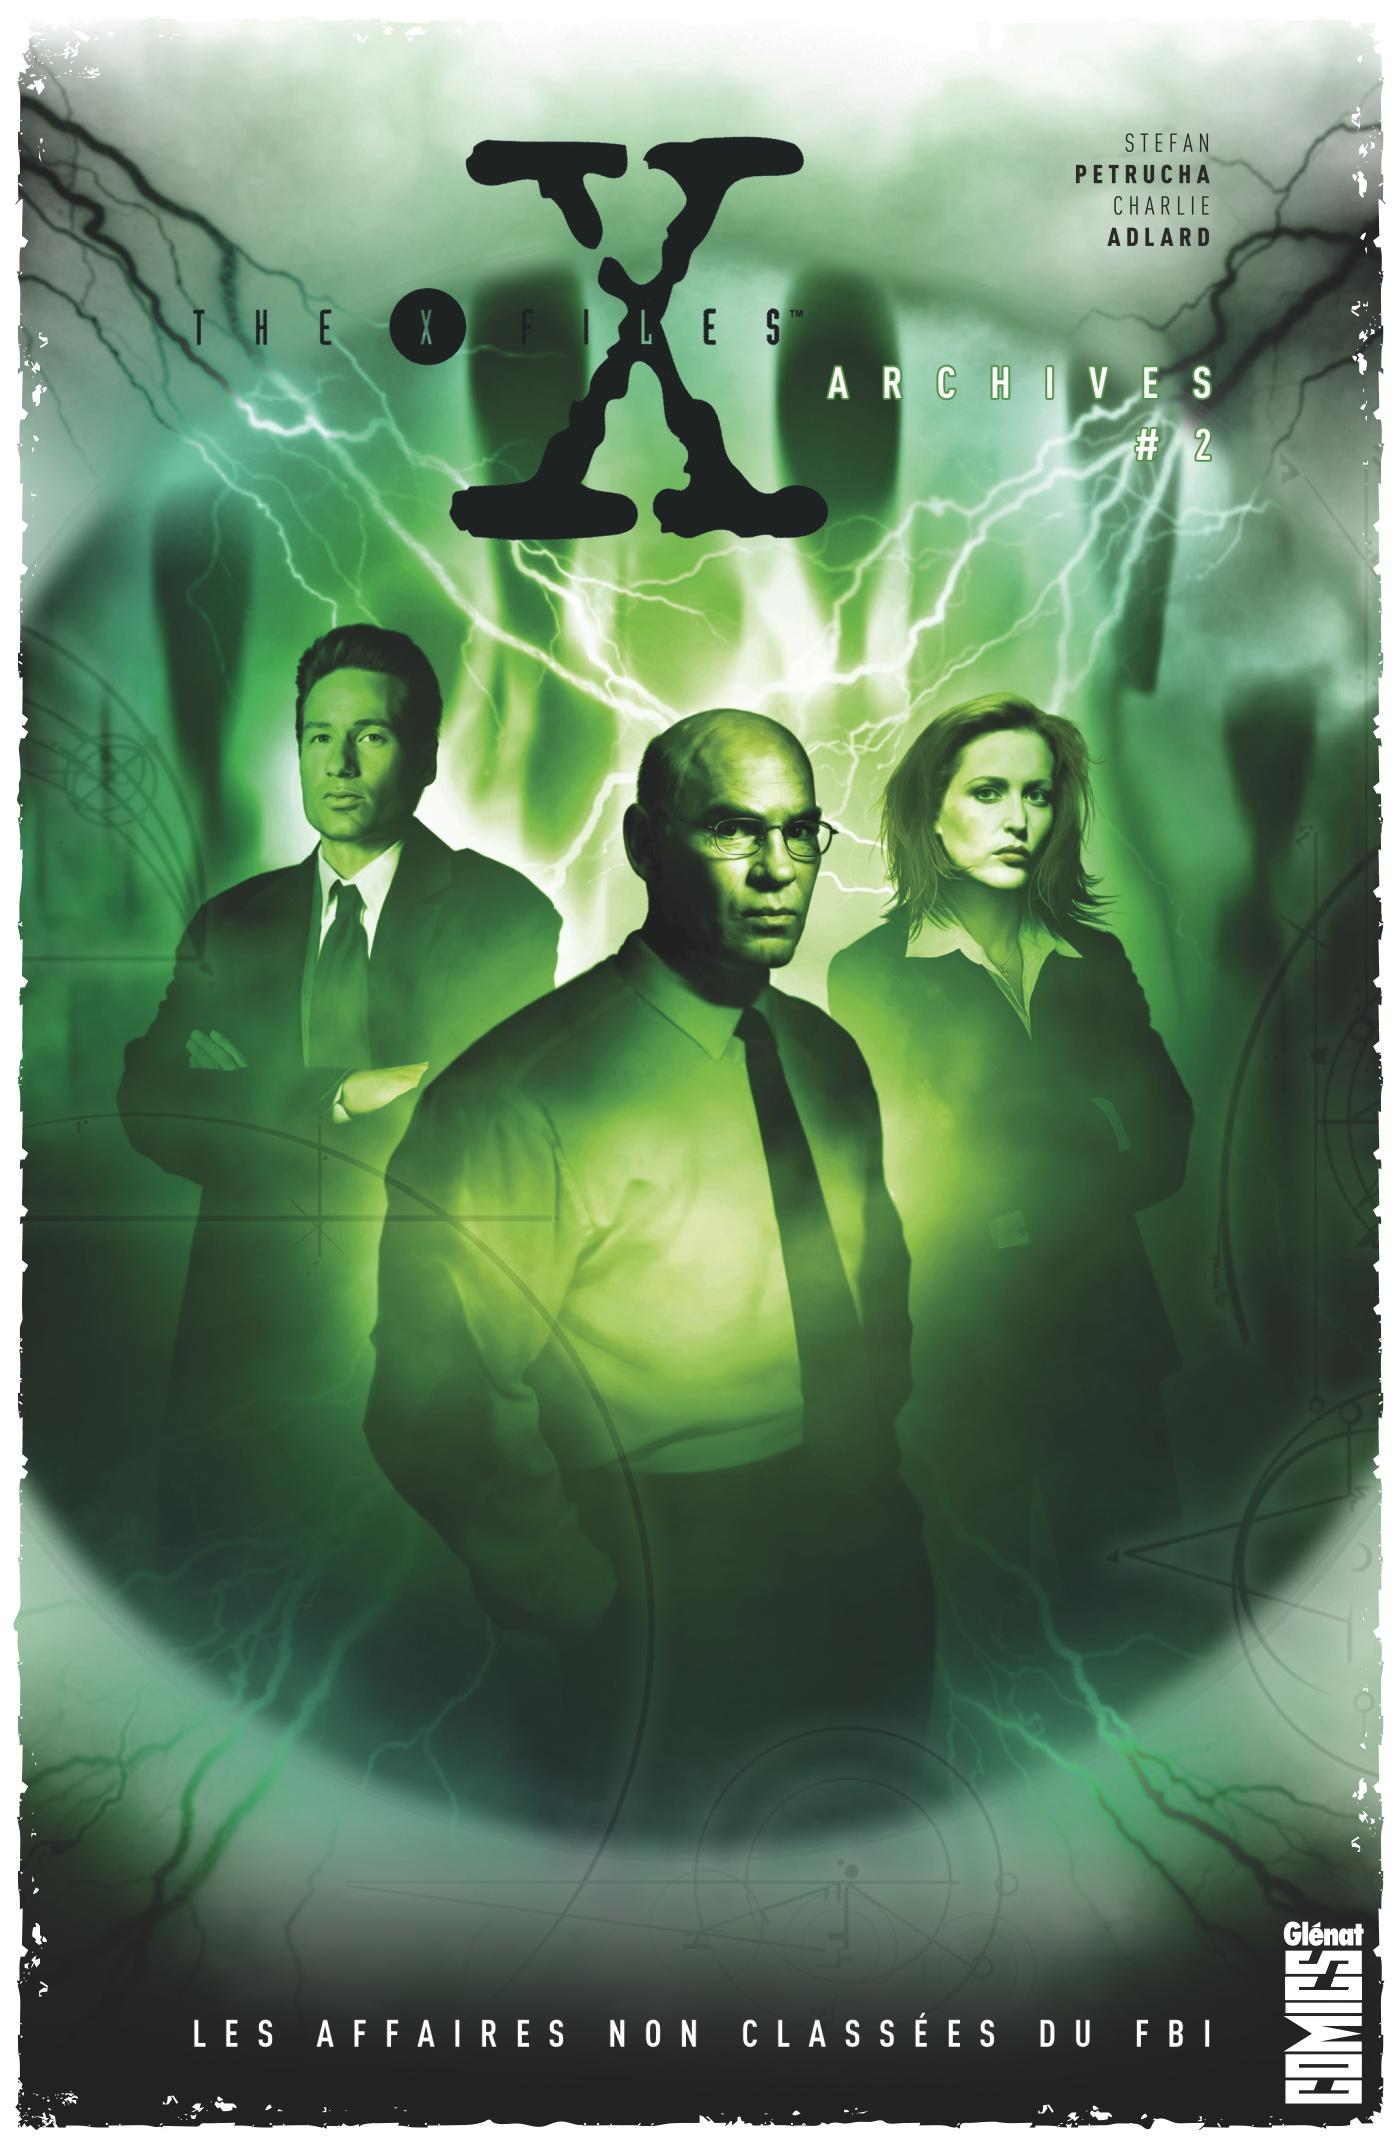 The X-files archives - les affaires non classées du FBI T.2  - Stefan Petrucha  - Ted Boonthanakit  - Charlie Adlard